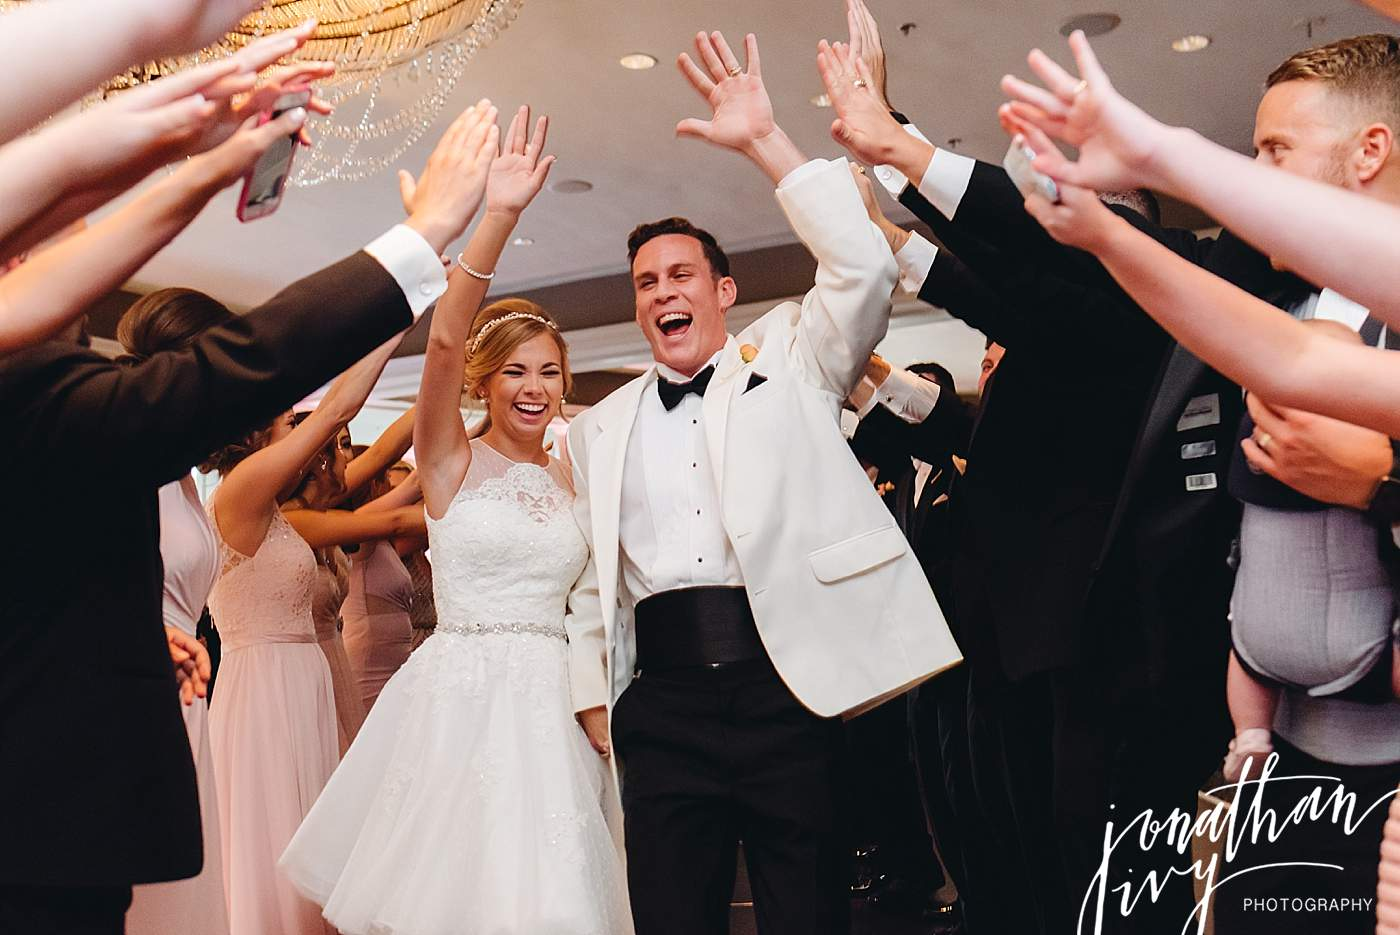 Hotel Zaza Houston,Hotel Zaza Wedding,Houston Wedding Photographer,The Woodlands Wedding Photographer,Wedding at Hotel Zaza,